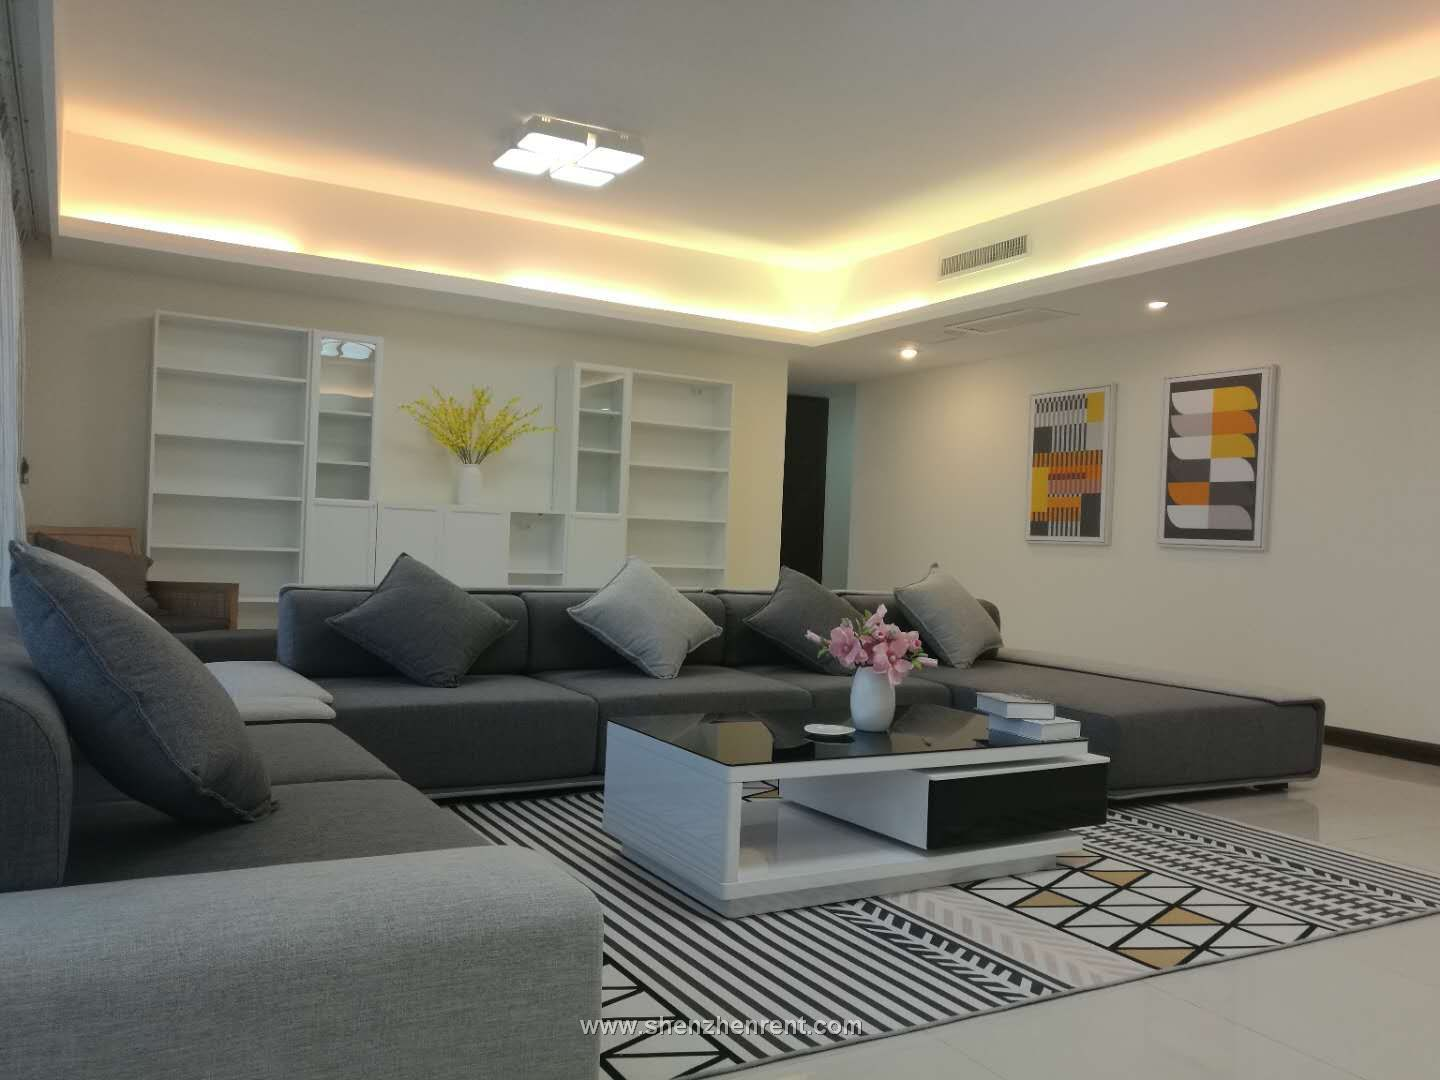 Newly renovated 4 bedrooms apartment with very big balcony in shekou for rent